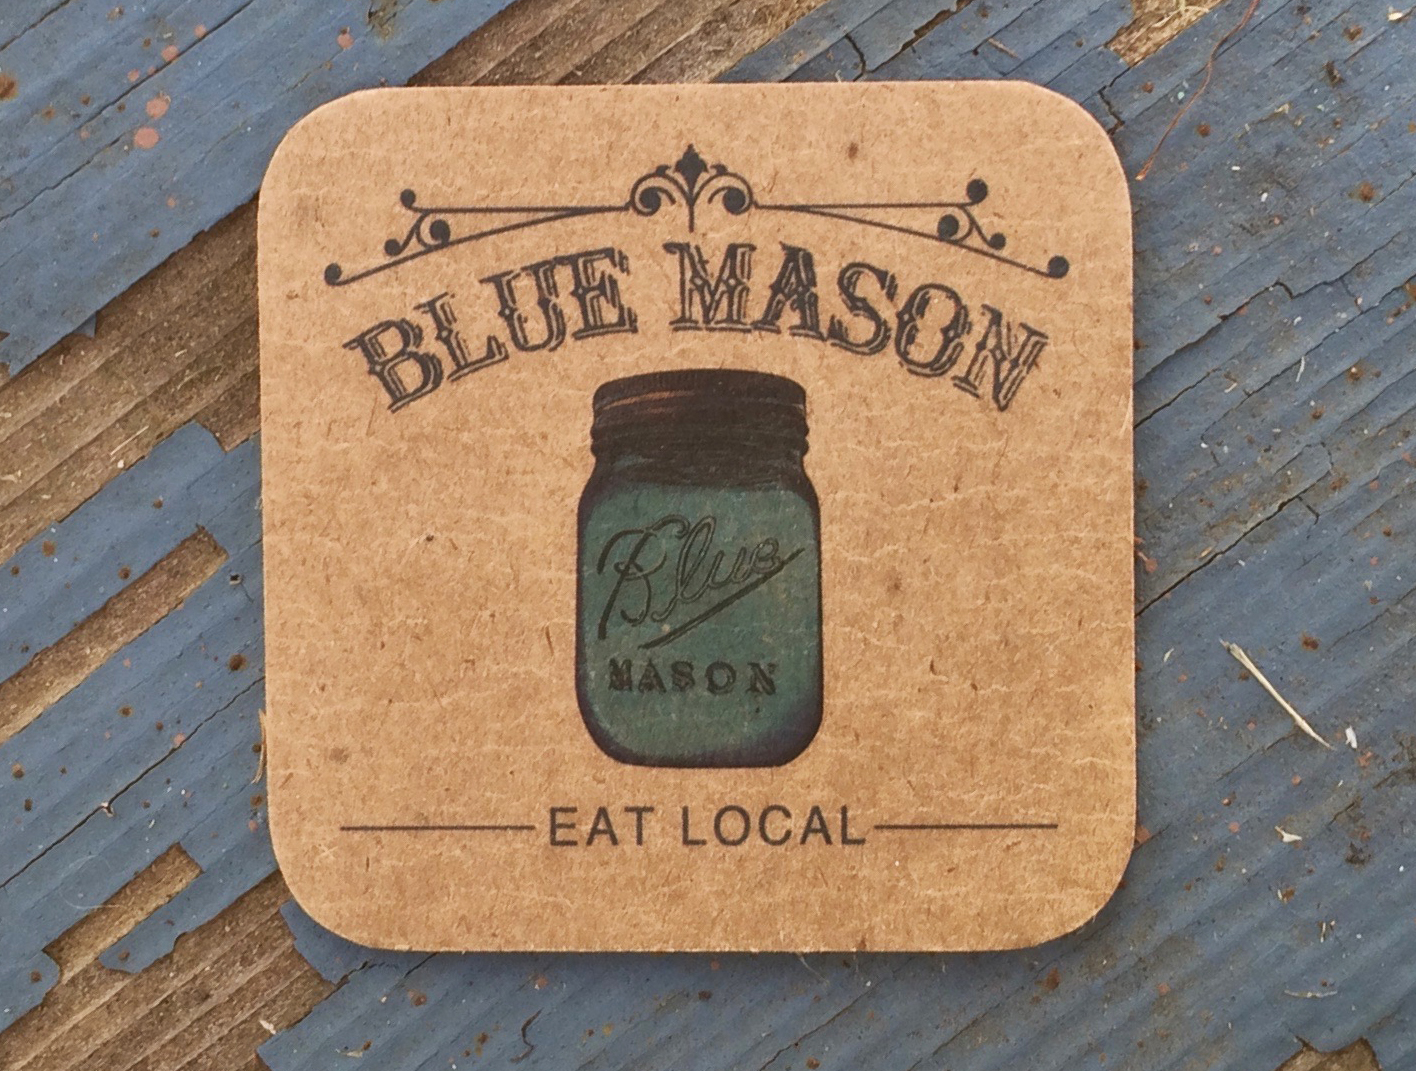 BLUE MASON CATERING | branding,styling, collateral